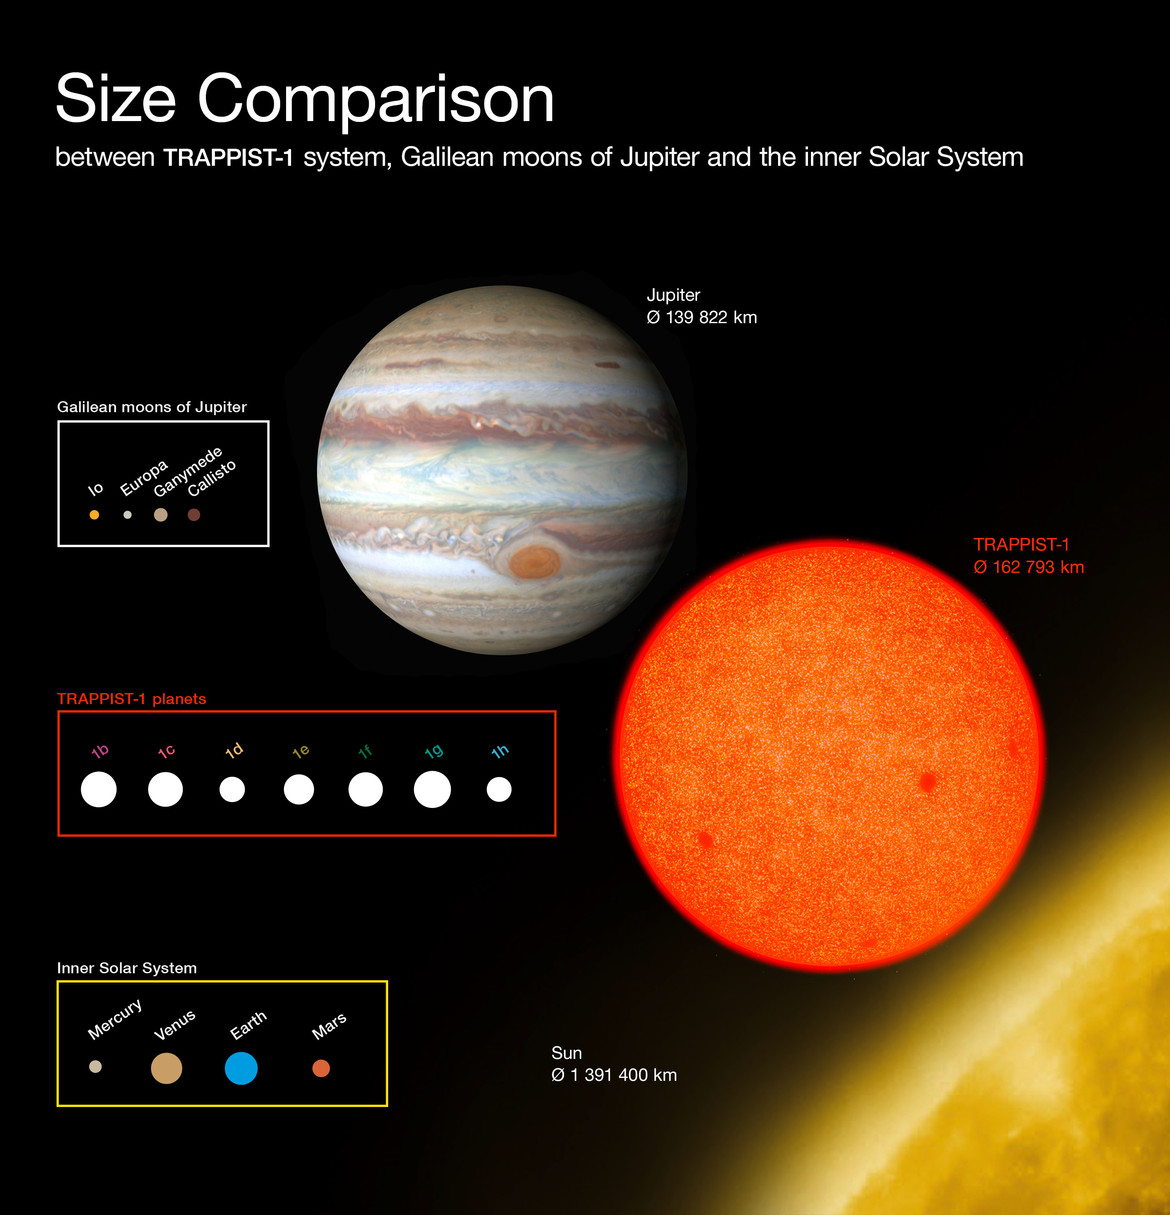 The size of TRAPPIST-1 and its planets compared to Jupiter and its moons, and the Sun and our planets.  Credit: ESO/O. Furtak